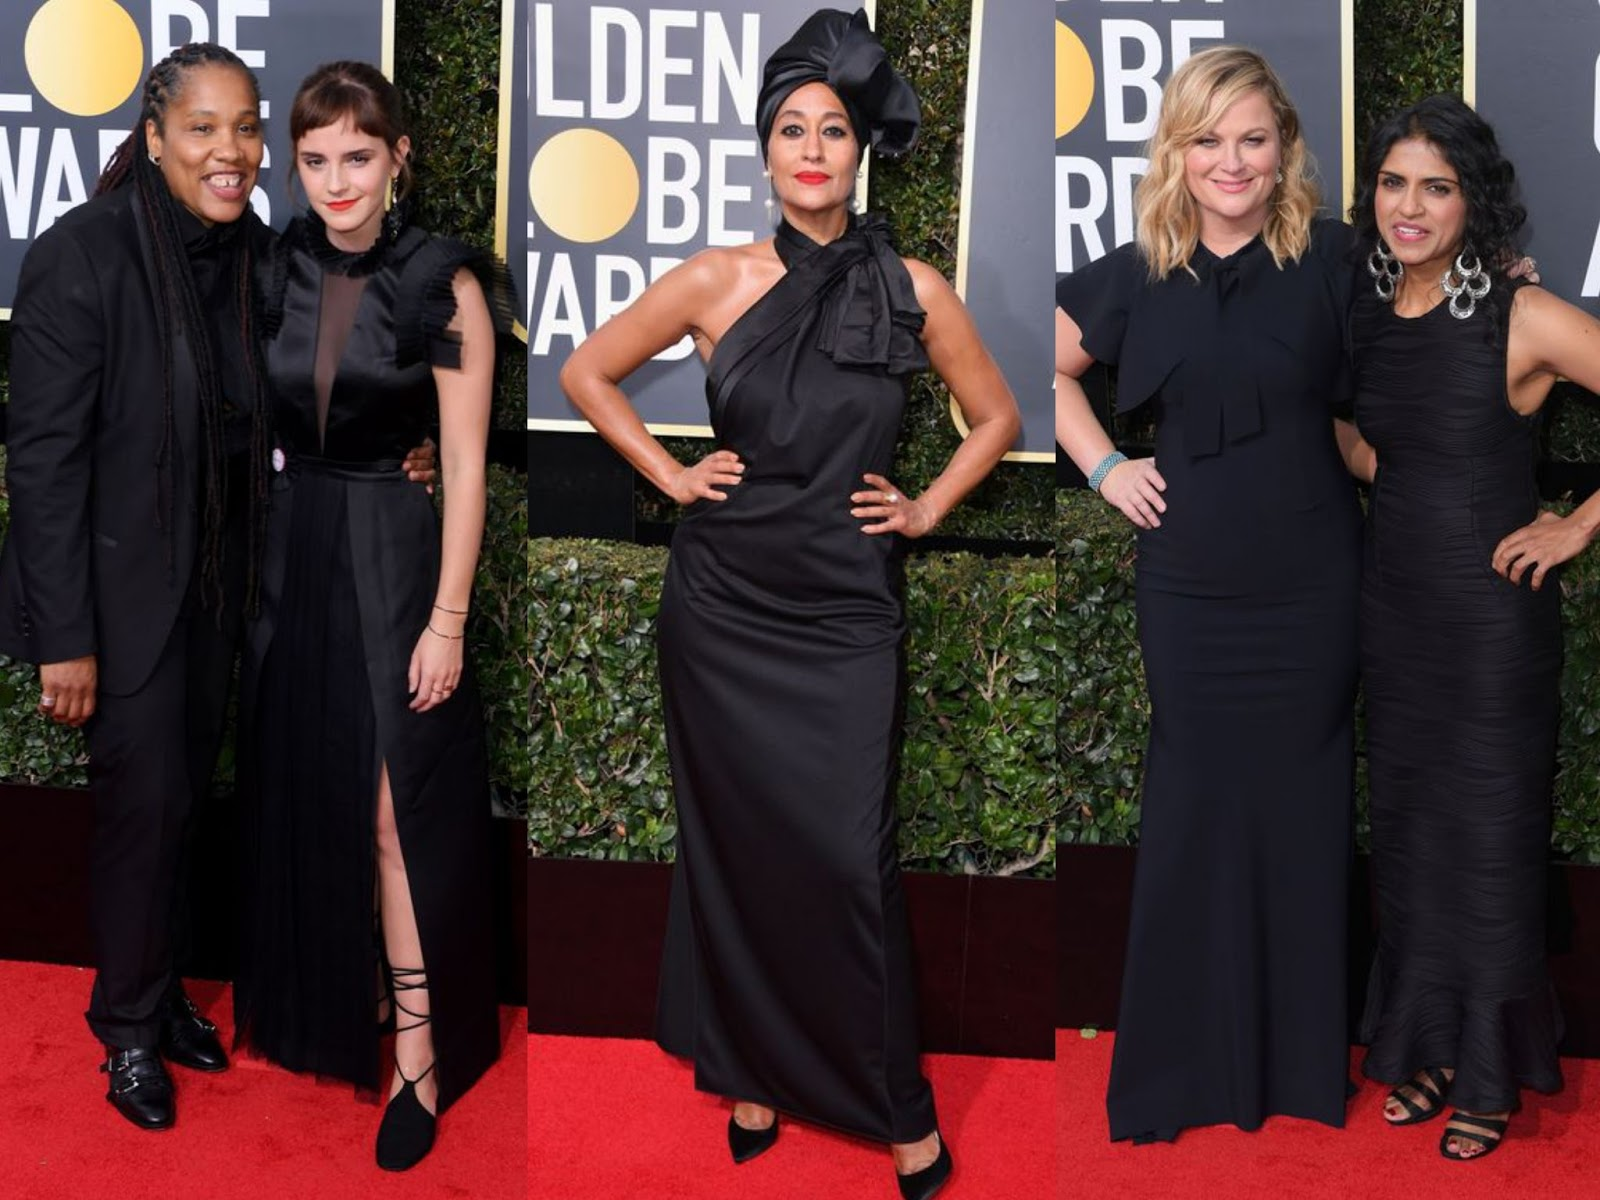 Goldenglobes 2018 Awardseason Redcarpet Allinblack Metoo Timesup Silentprotest